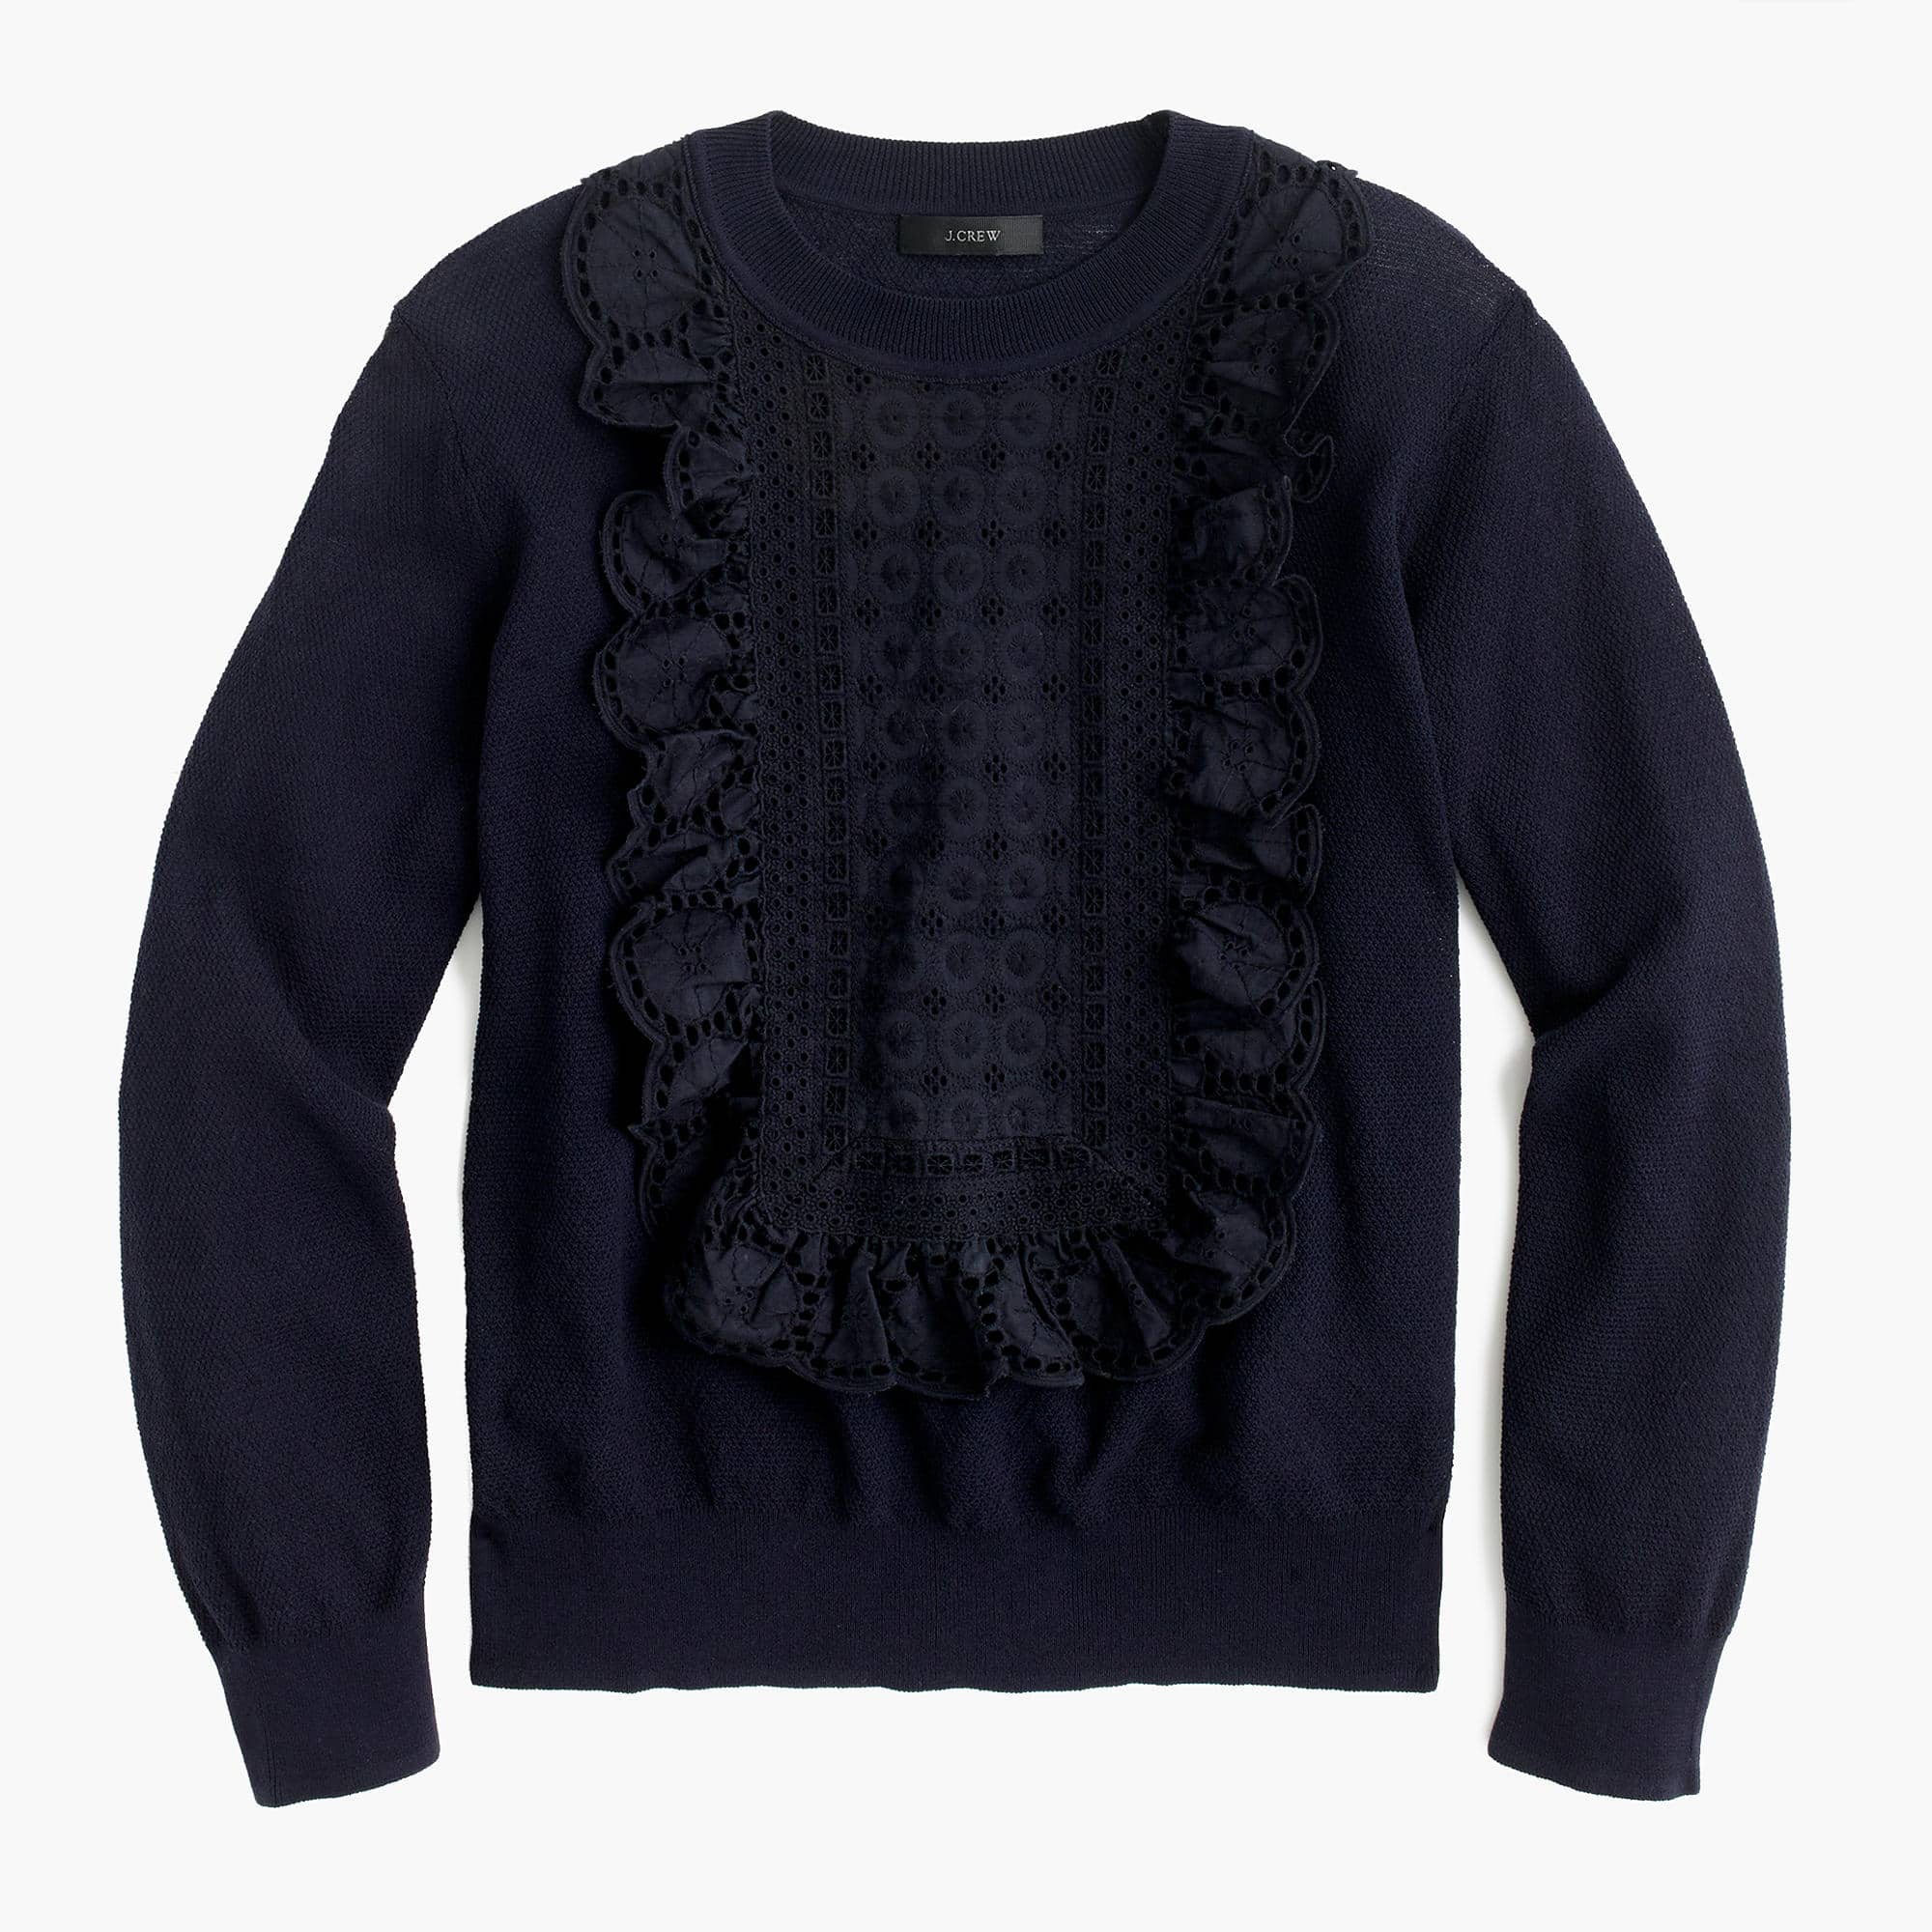 The Fashion Magpie Eyelet Sweatshirt 2